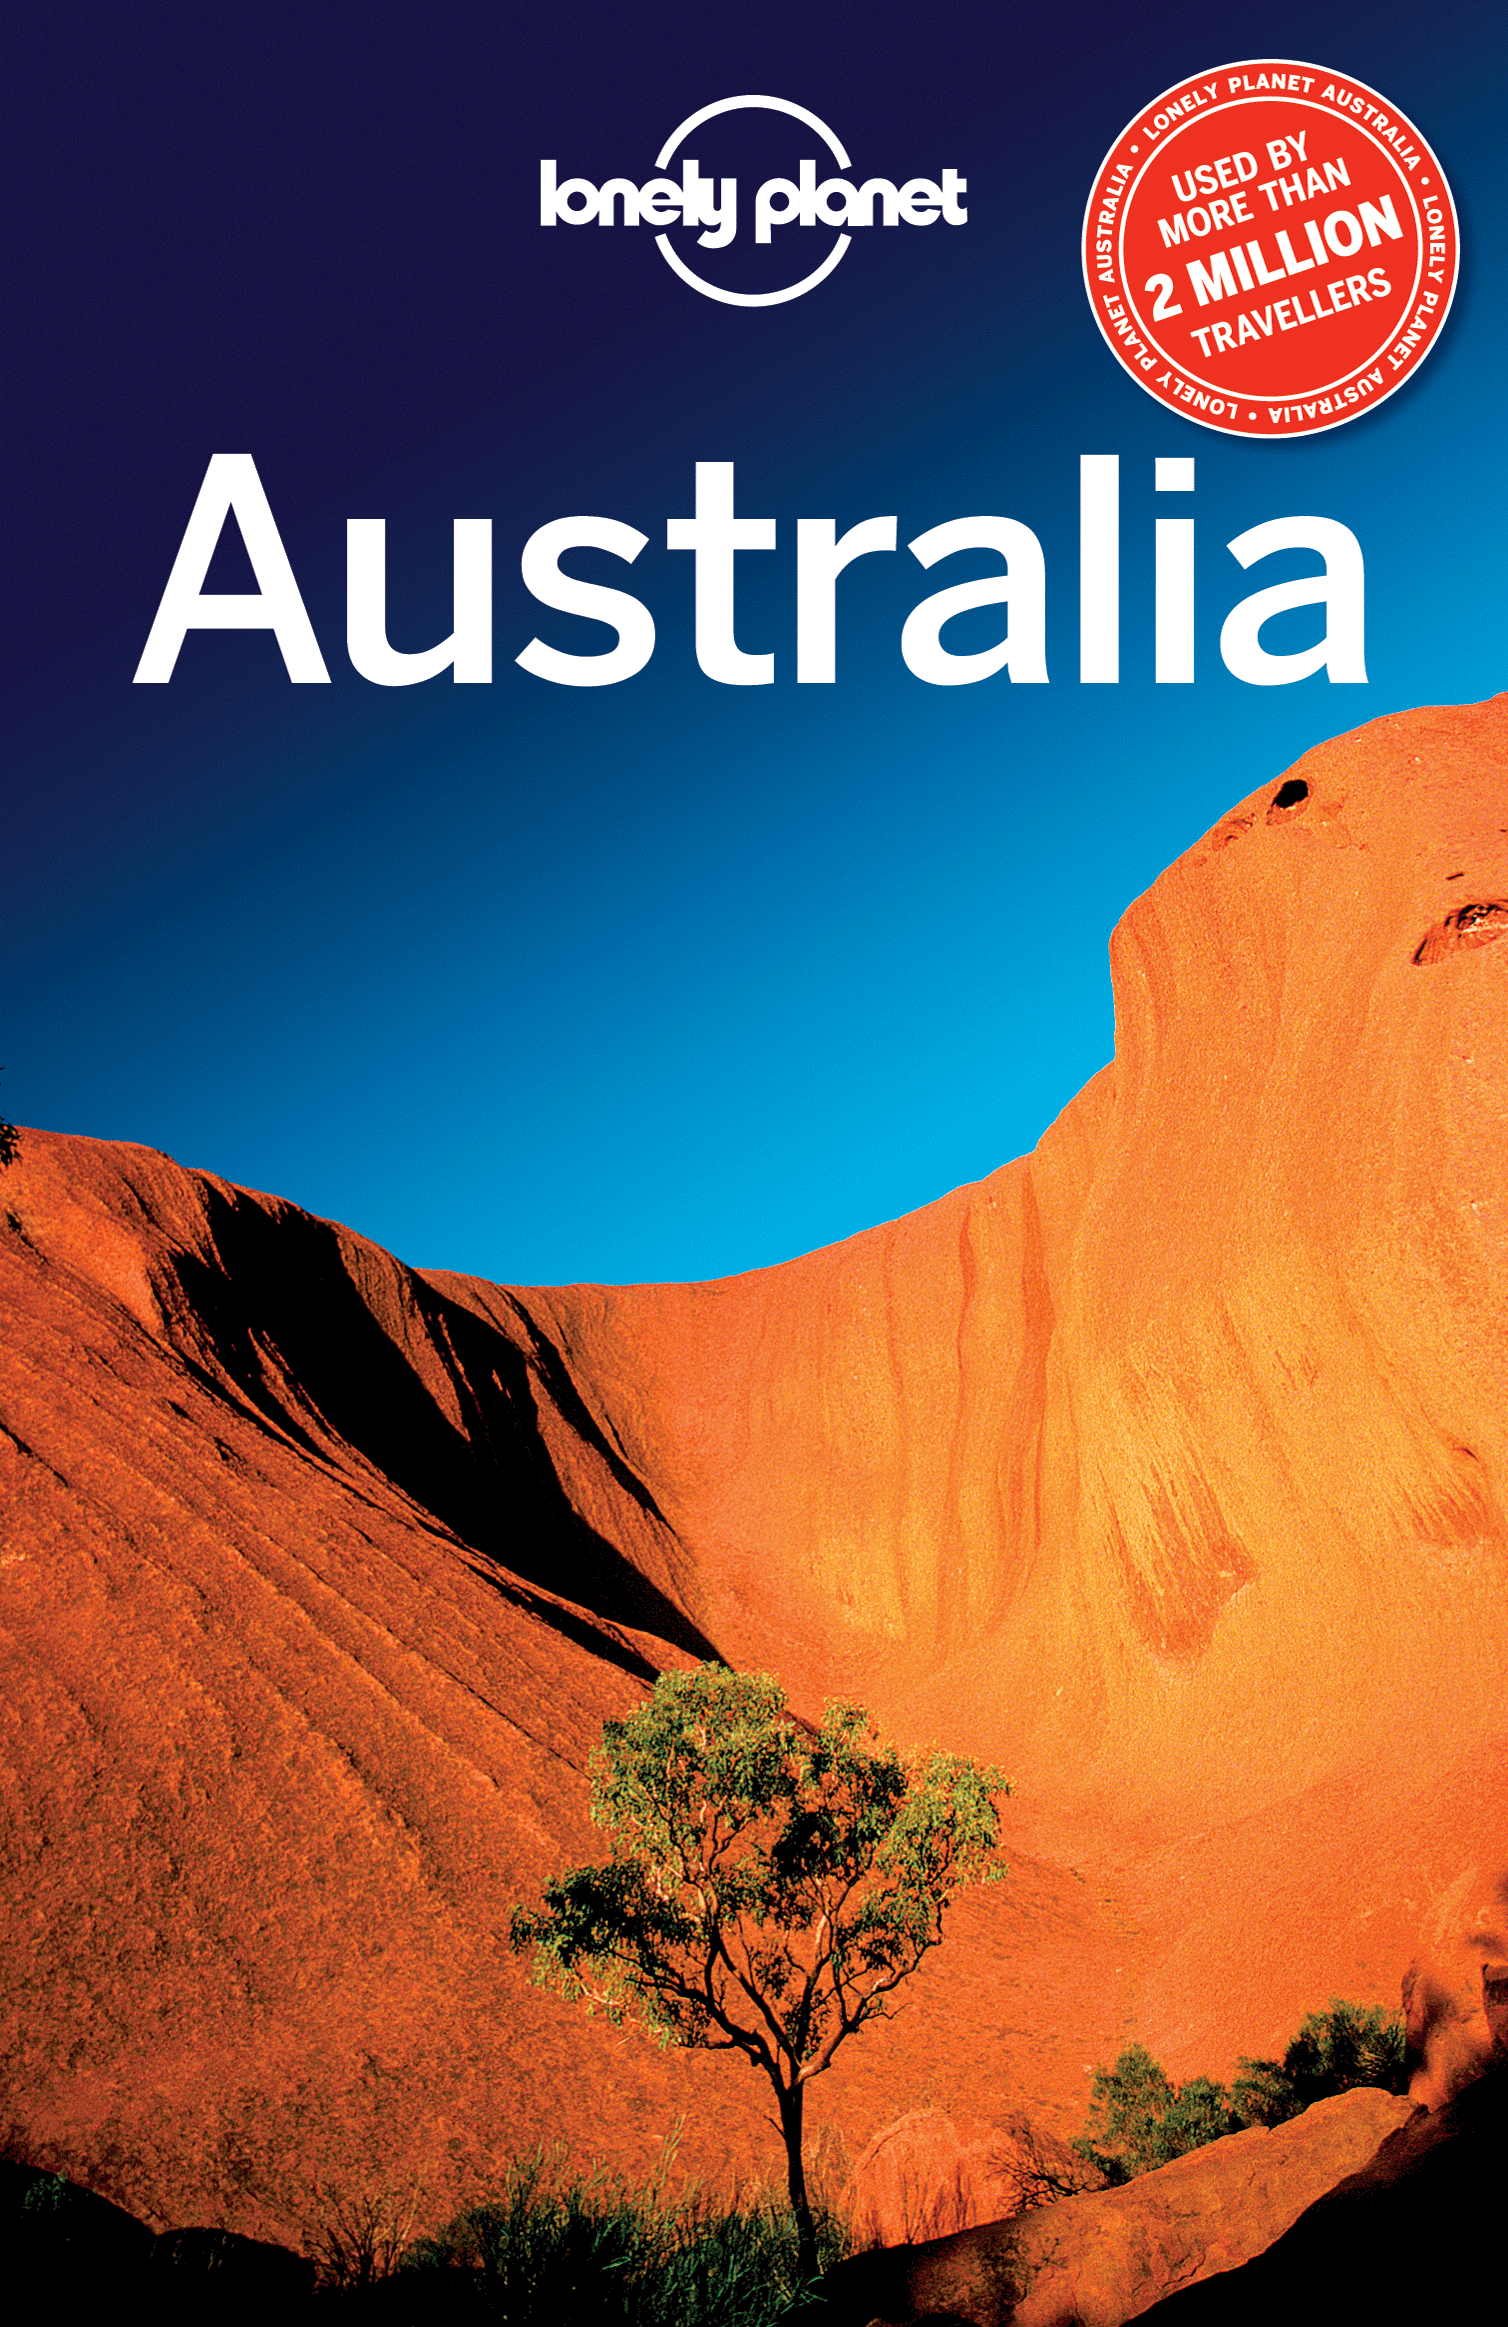 Lonely Planet Australia By: Brett Atkinson,Charles Rawlings-Way,Jayne D'Arcy,Lonely Planet,Meg Worby,Paul Harding,Penny Watson,Peter Dragicevich,Regis St Louis,Virginia Maxwell